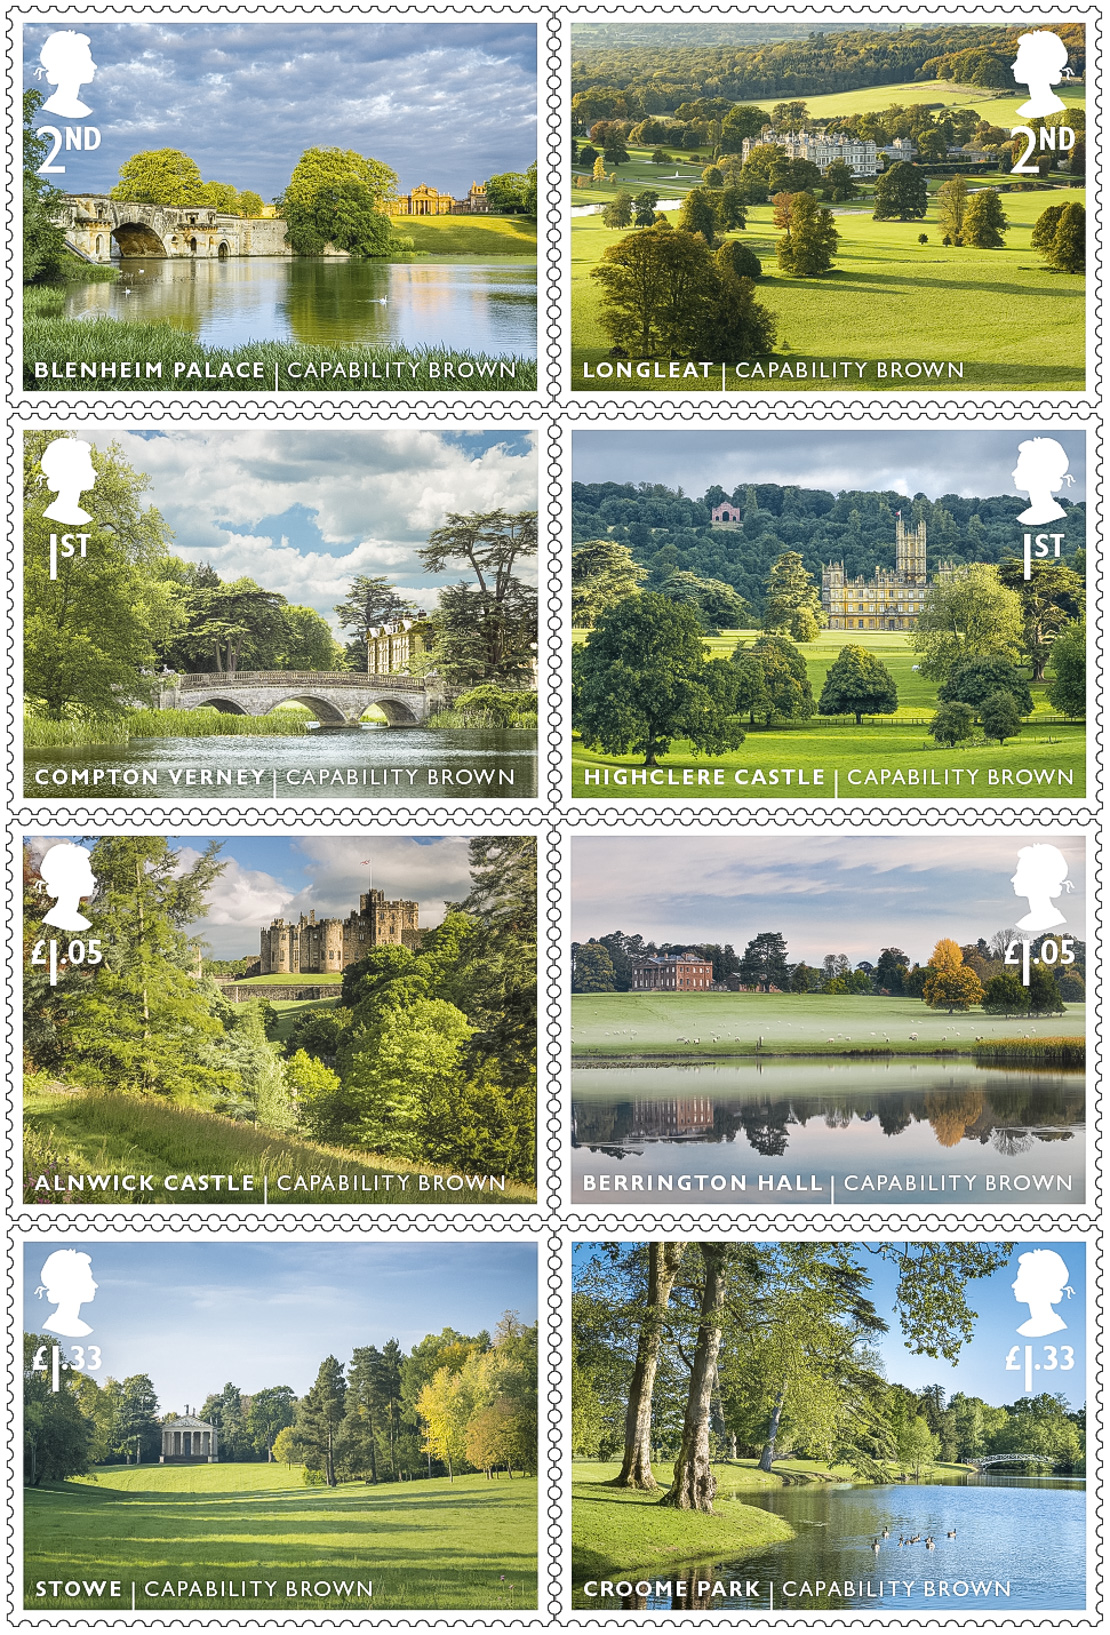 Capability Brown Stamps